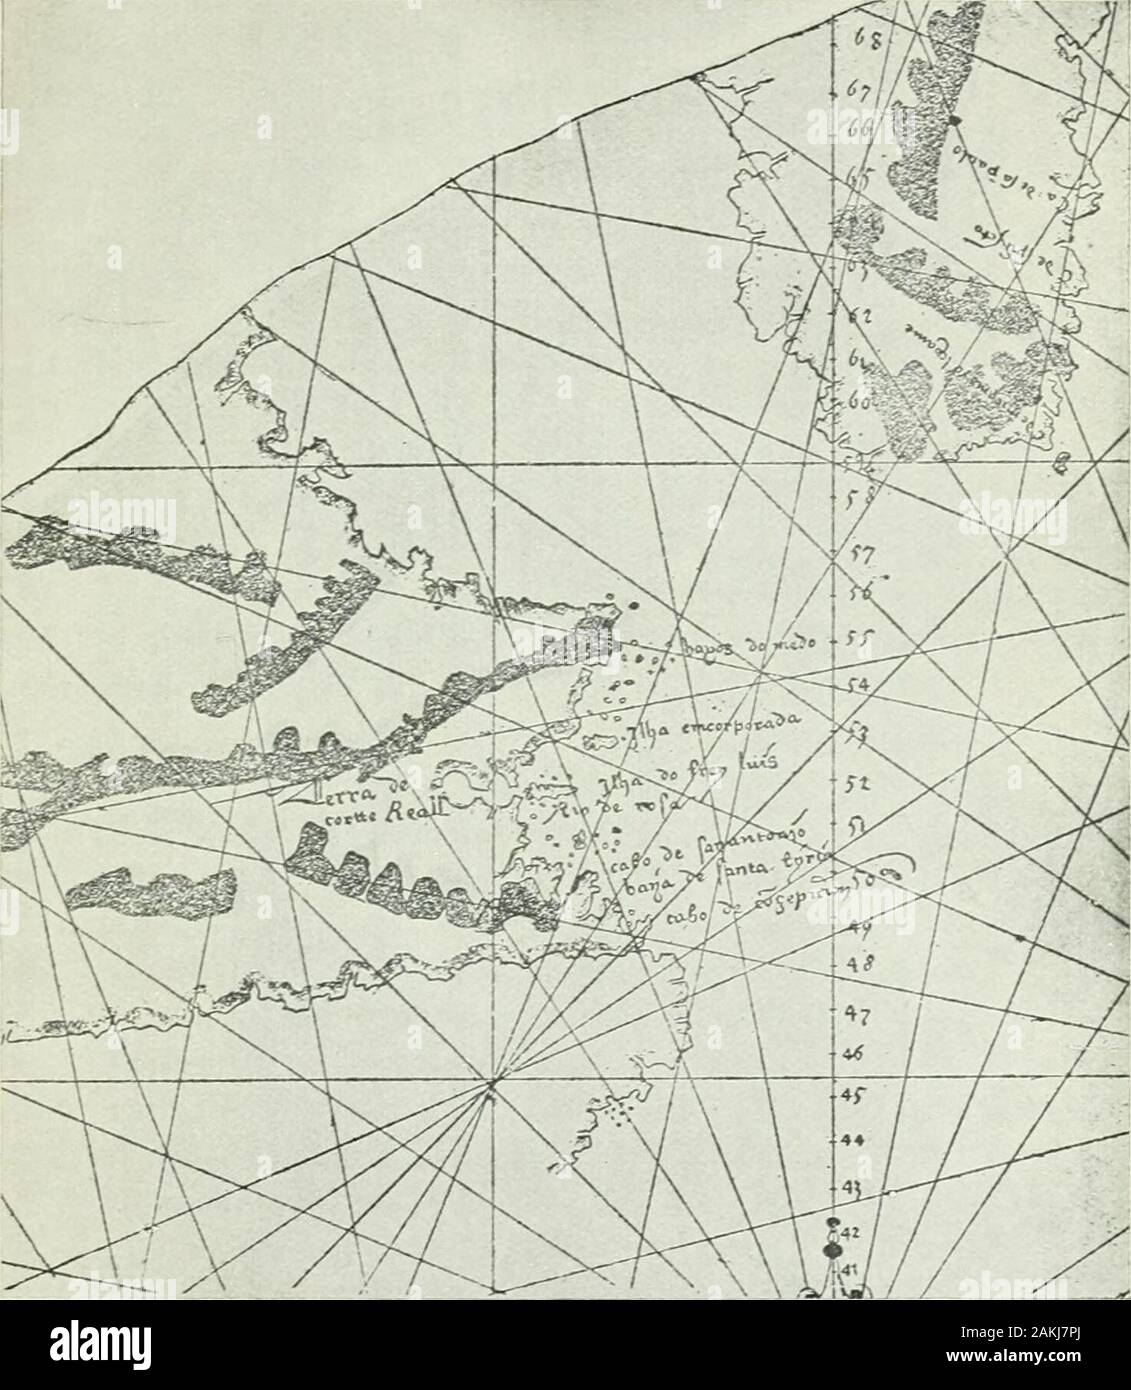 Labrador: its discovery, exploration, and development . 529, Wolfenbuttel B 1530, Ricardina1540, Deslien 1541, Sebastian Cabot 1544, and Descliers1546, the peculiarities of which will be discussed later. The maps known as the Egerton Portulan 1507,Ruysch 1508, and Majiolo 1511, are more crude in theirdelineation, but are all interesting, as they embody theidea that the newly found countries were the easternportion of Asia. The Ruysch map is particularly im-portant to us as it shows the veritable Greenland, sonamed, and Newfoundland labelled, for the first time, Terra Nova, but Labrador is not Stock Photo